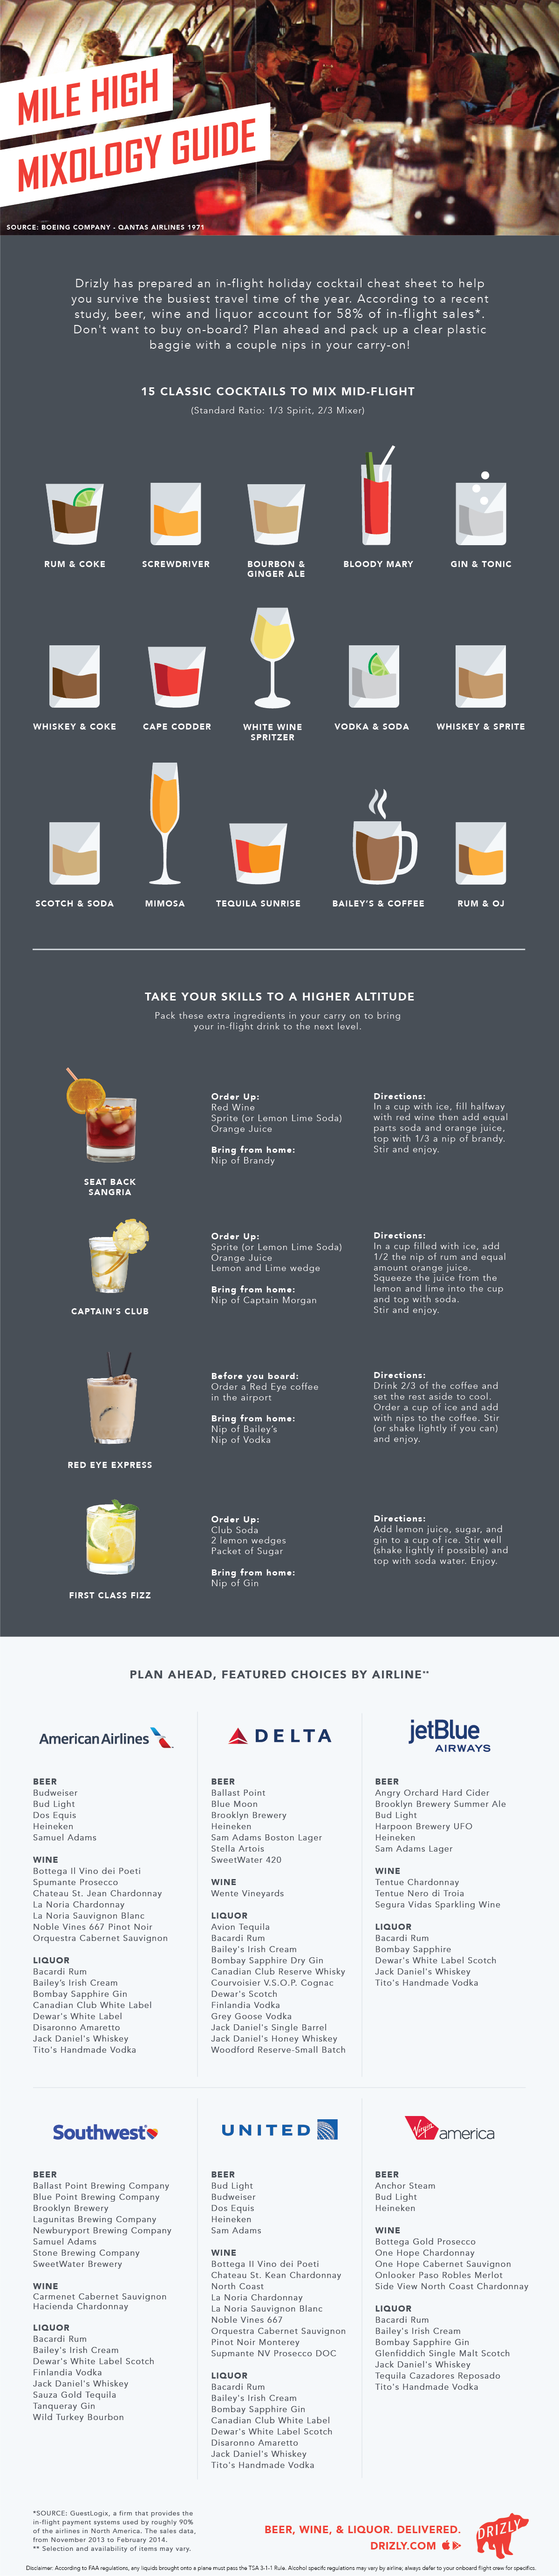 Mile High Mixology Guide by Drizly (1)